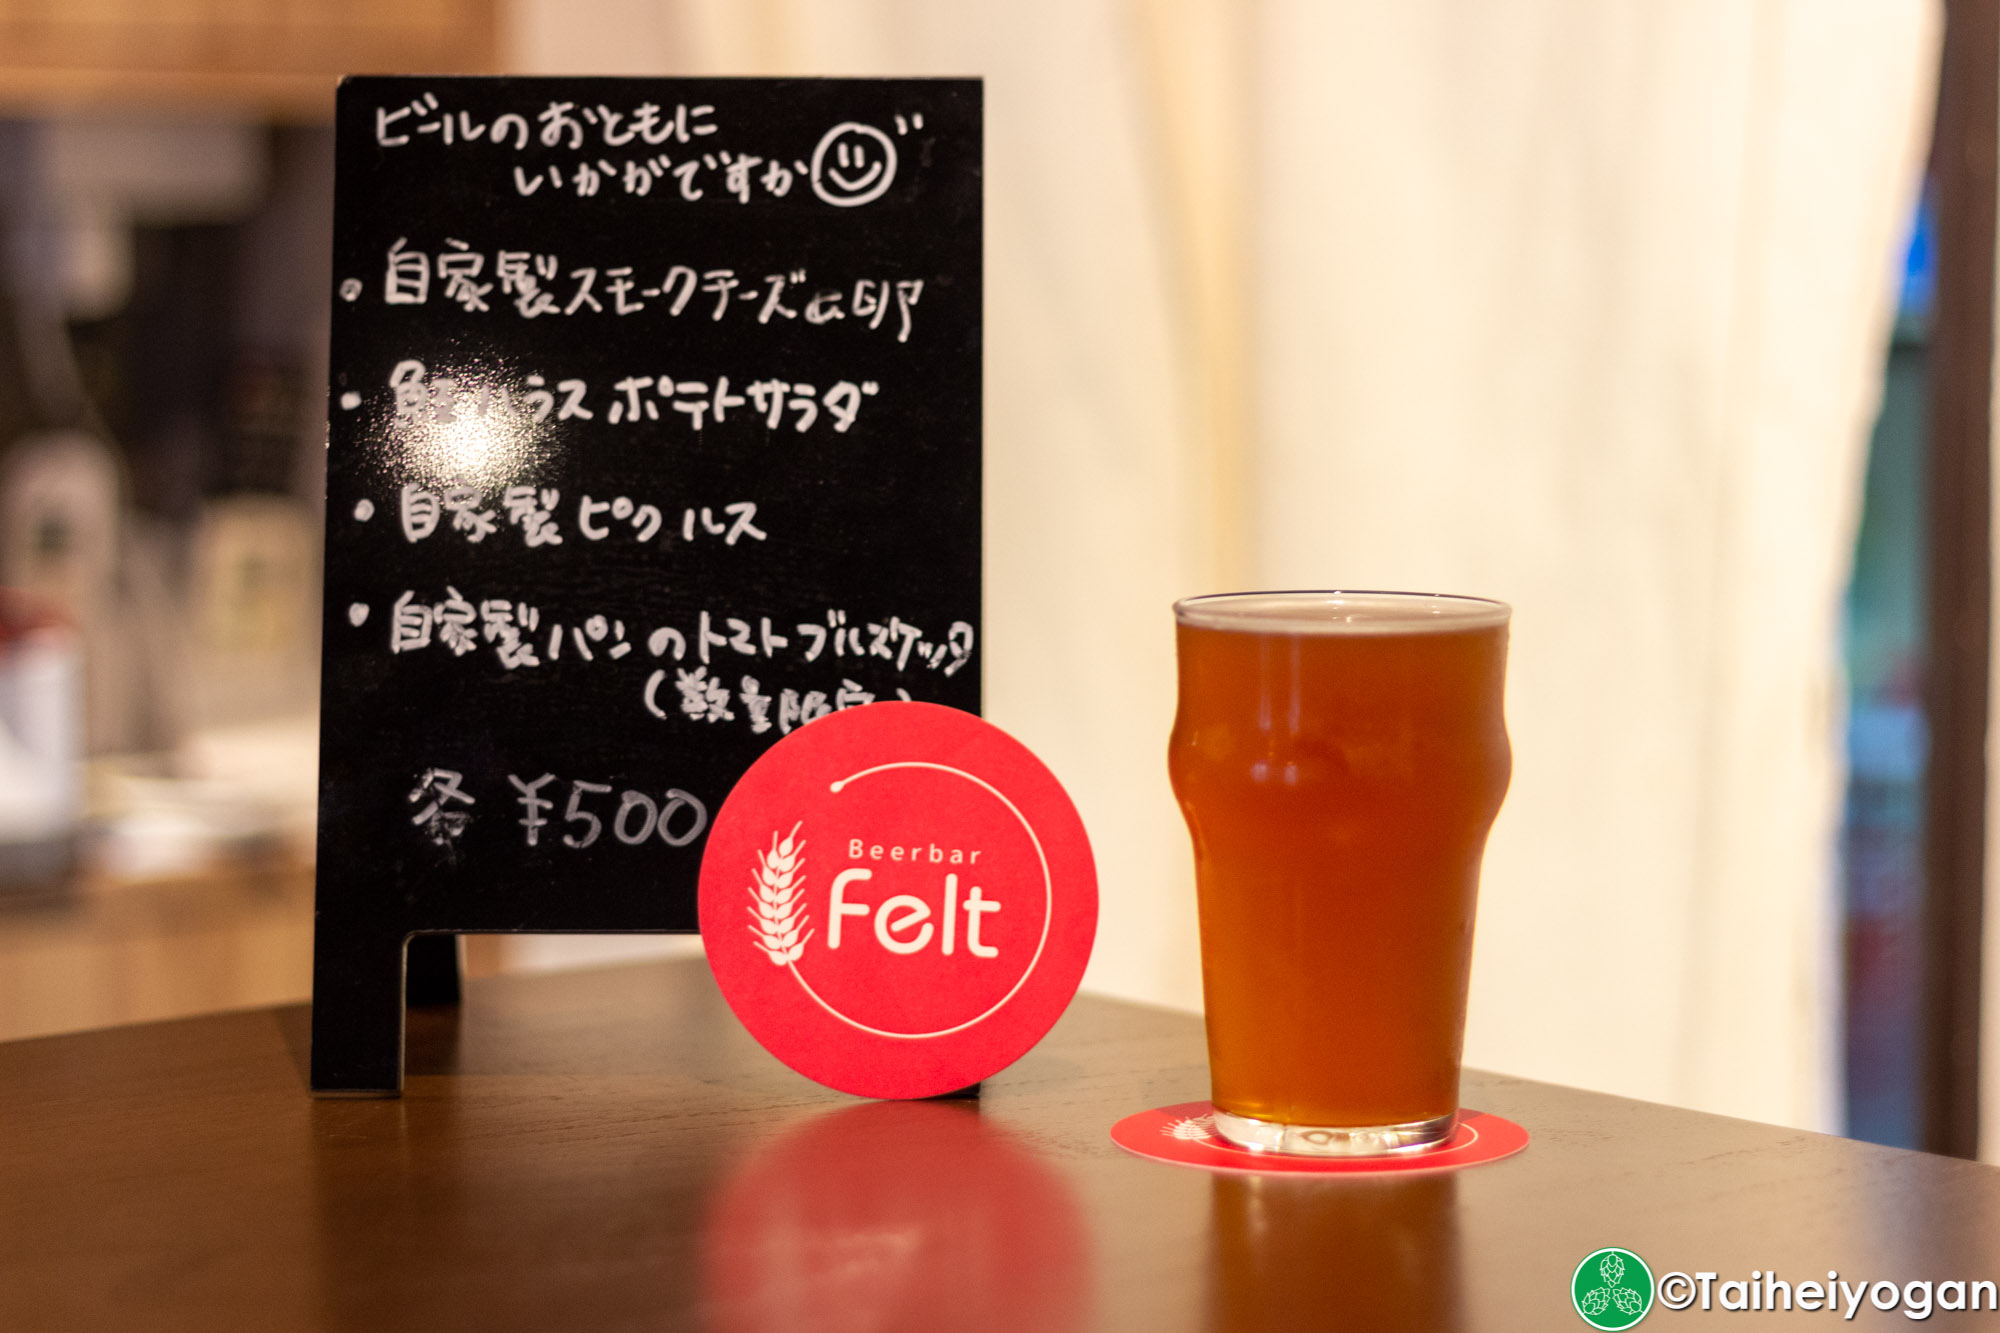 Beerbar Felt - Menu - Craft Beer